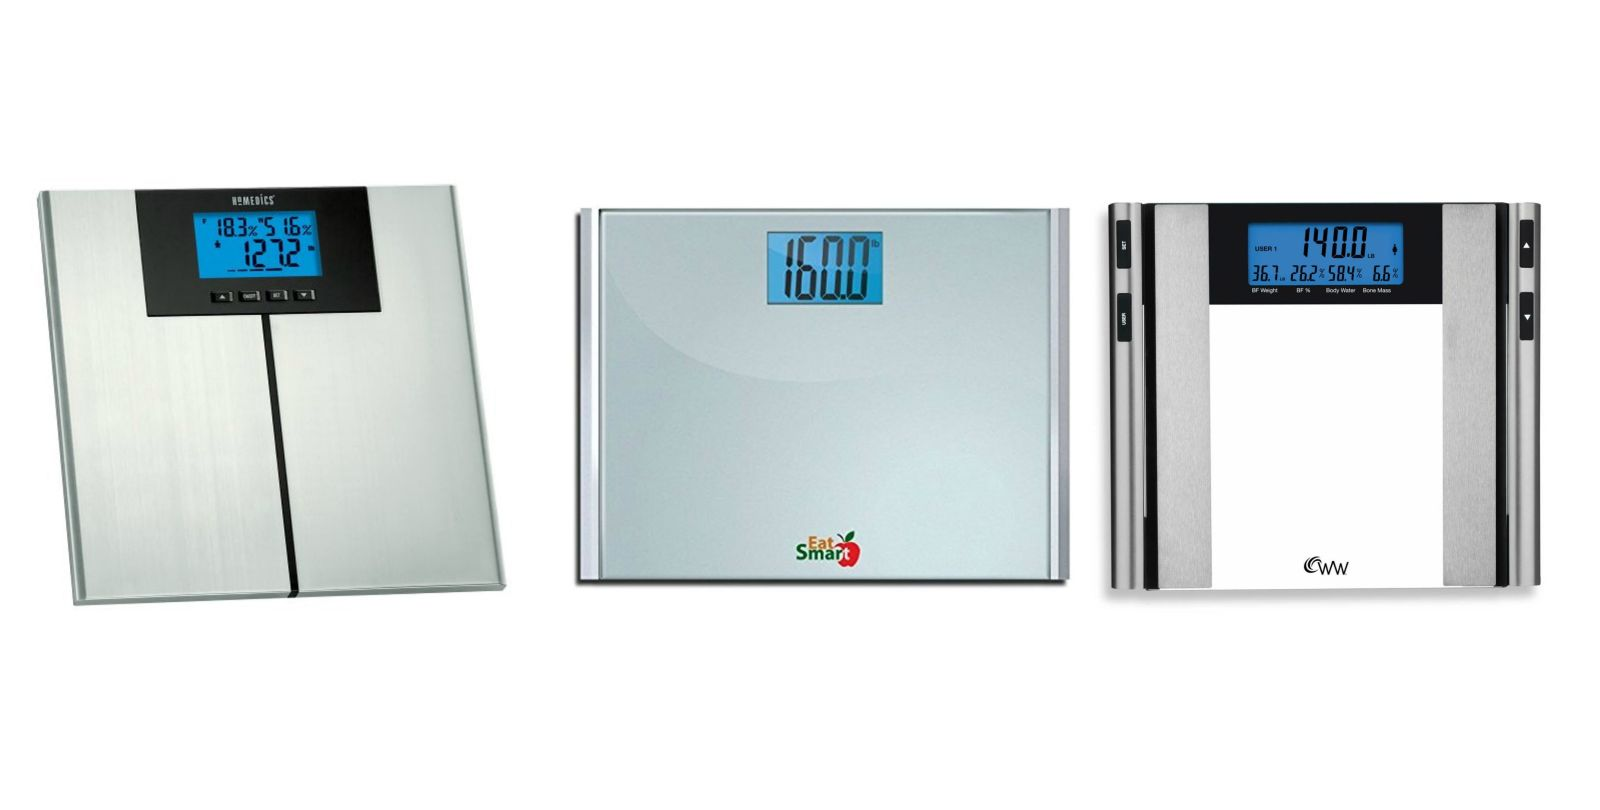 Bathroom scale accuracy consistency - Bathroom Scale Accuracy Consistency 6